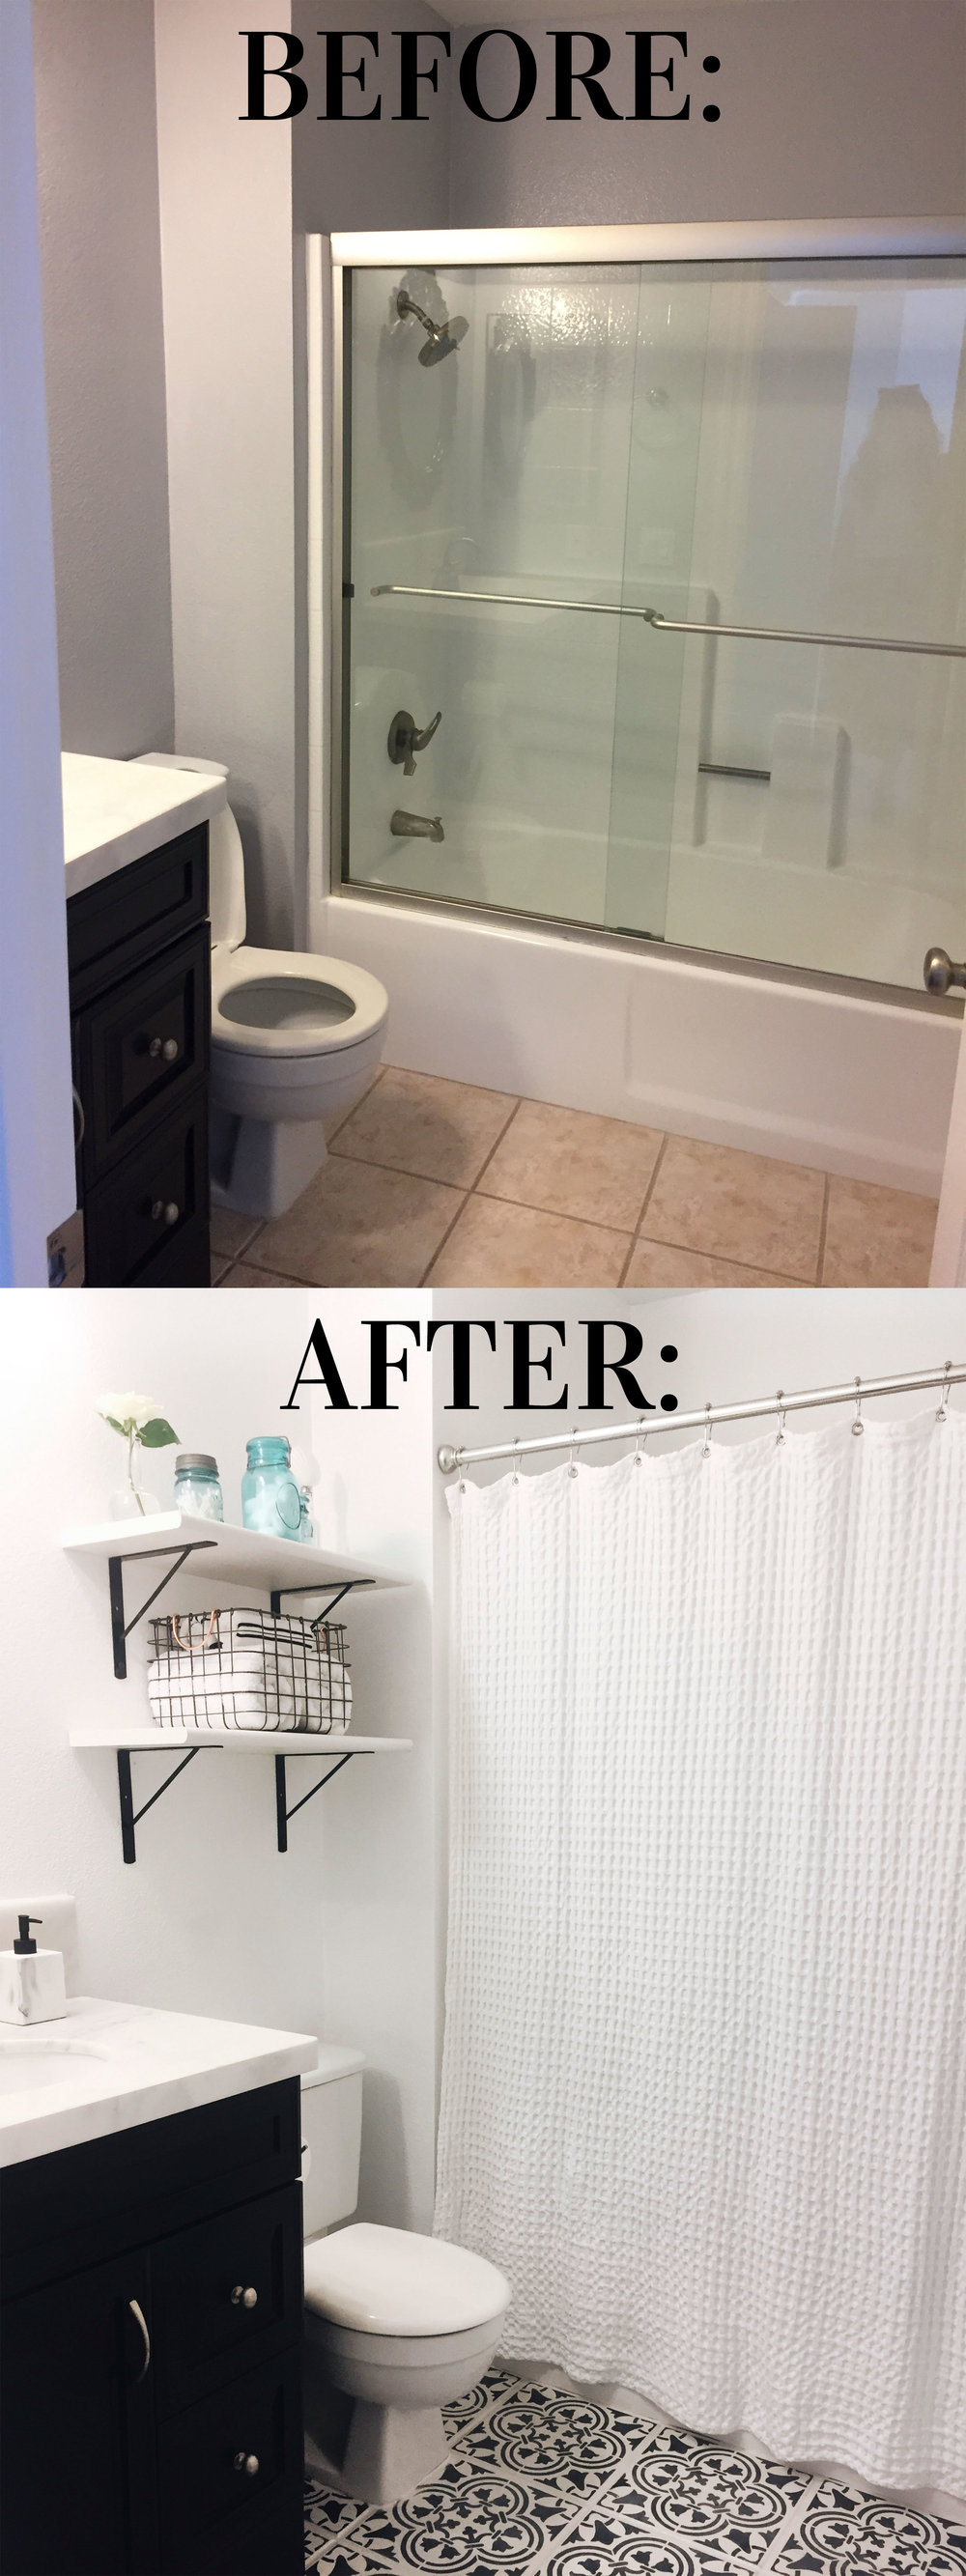 DIY-painted-moroccan-tile_black-white-moroccan-tile_cutting-edge-stencil-augusta_black-and-white-bathroom_BEFORE-AFTER_01.jpg